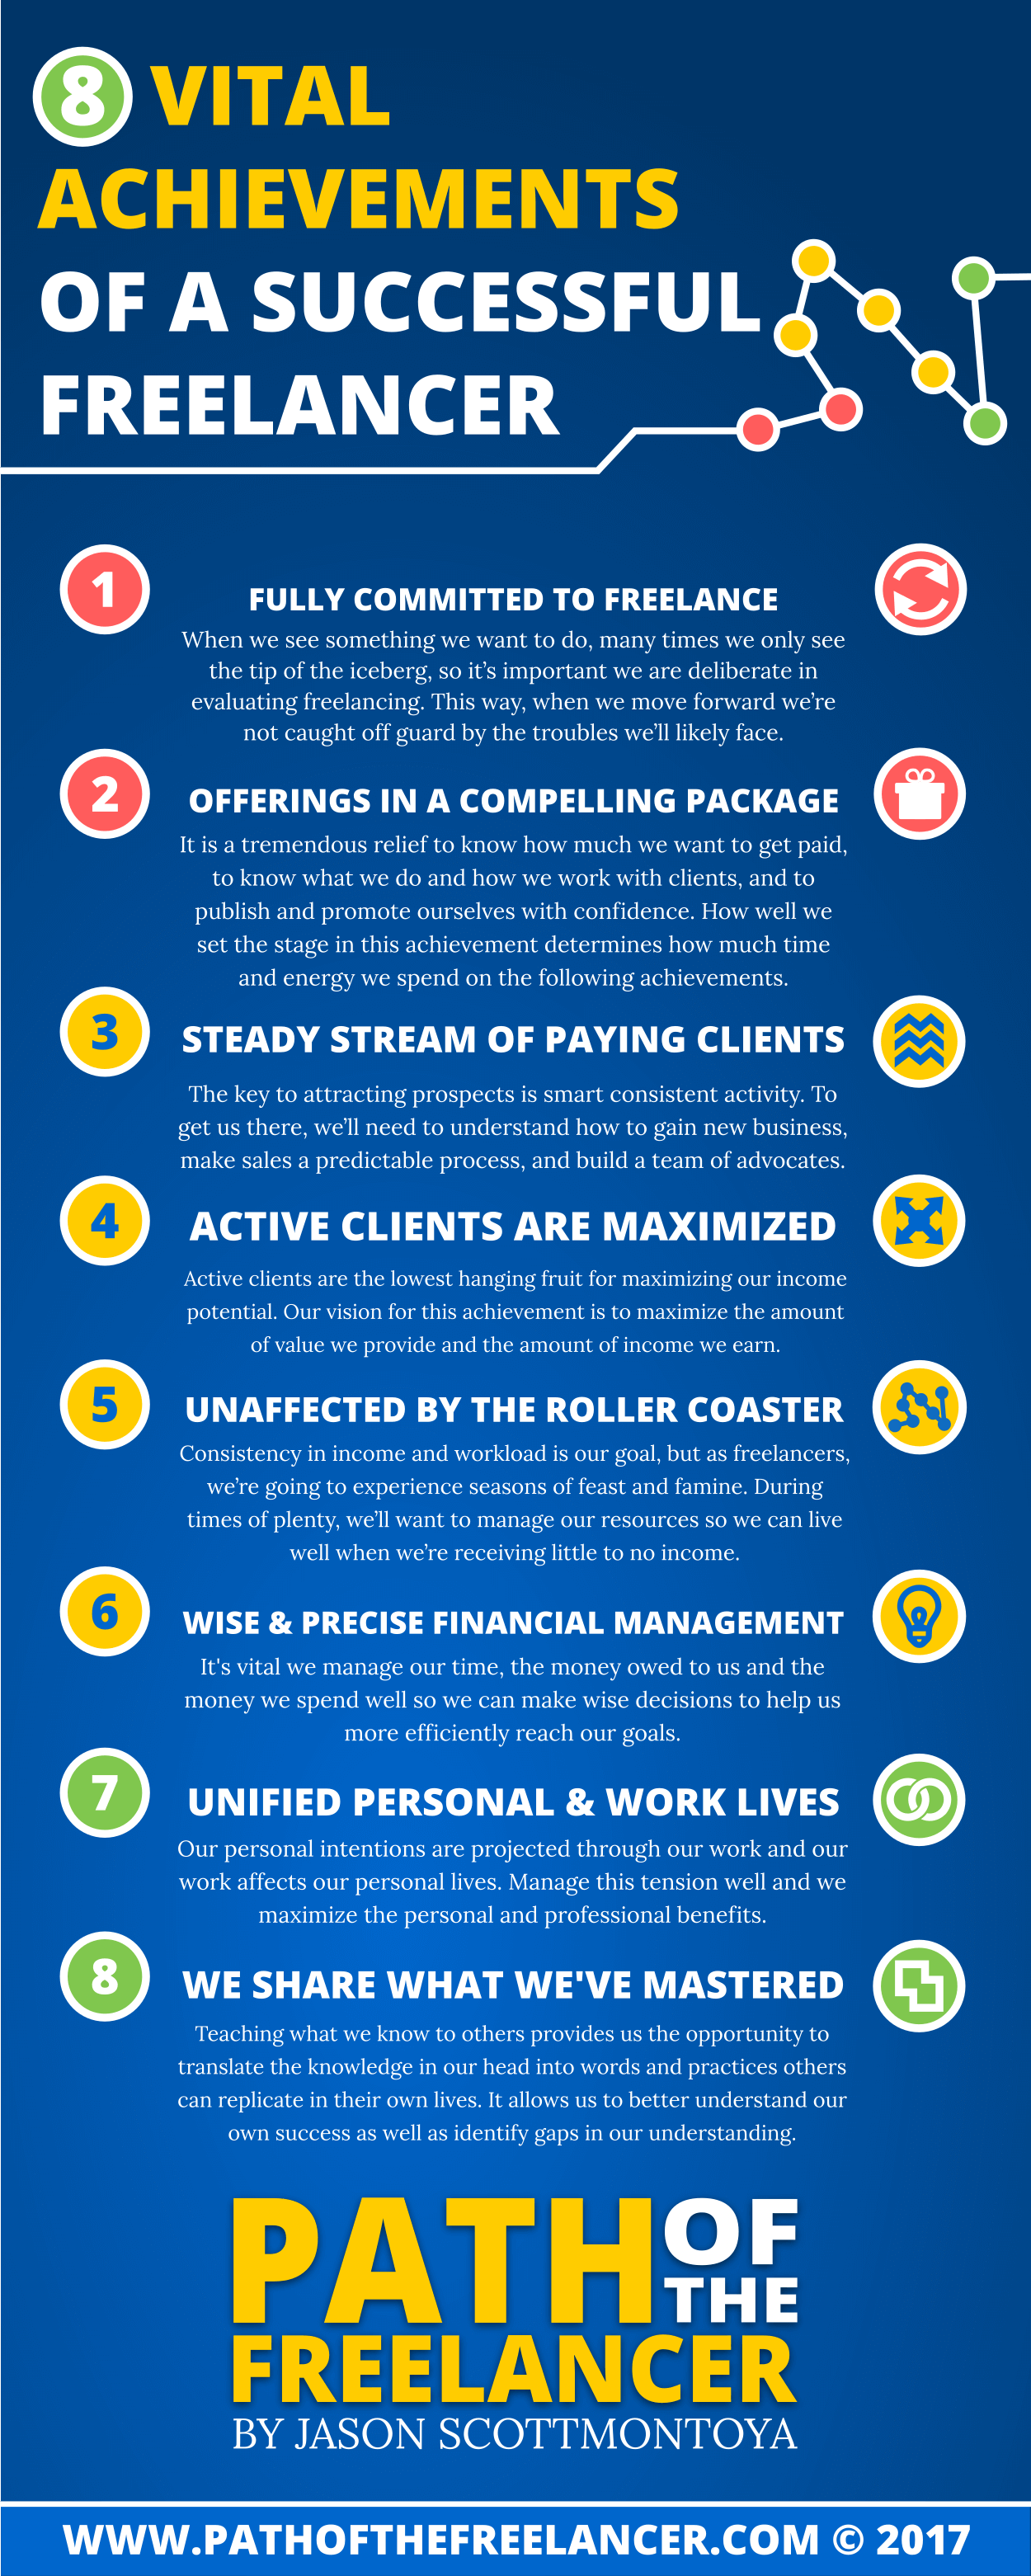 Path Of The Freelancer Achievements Infographic